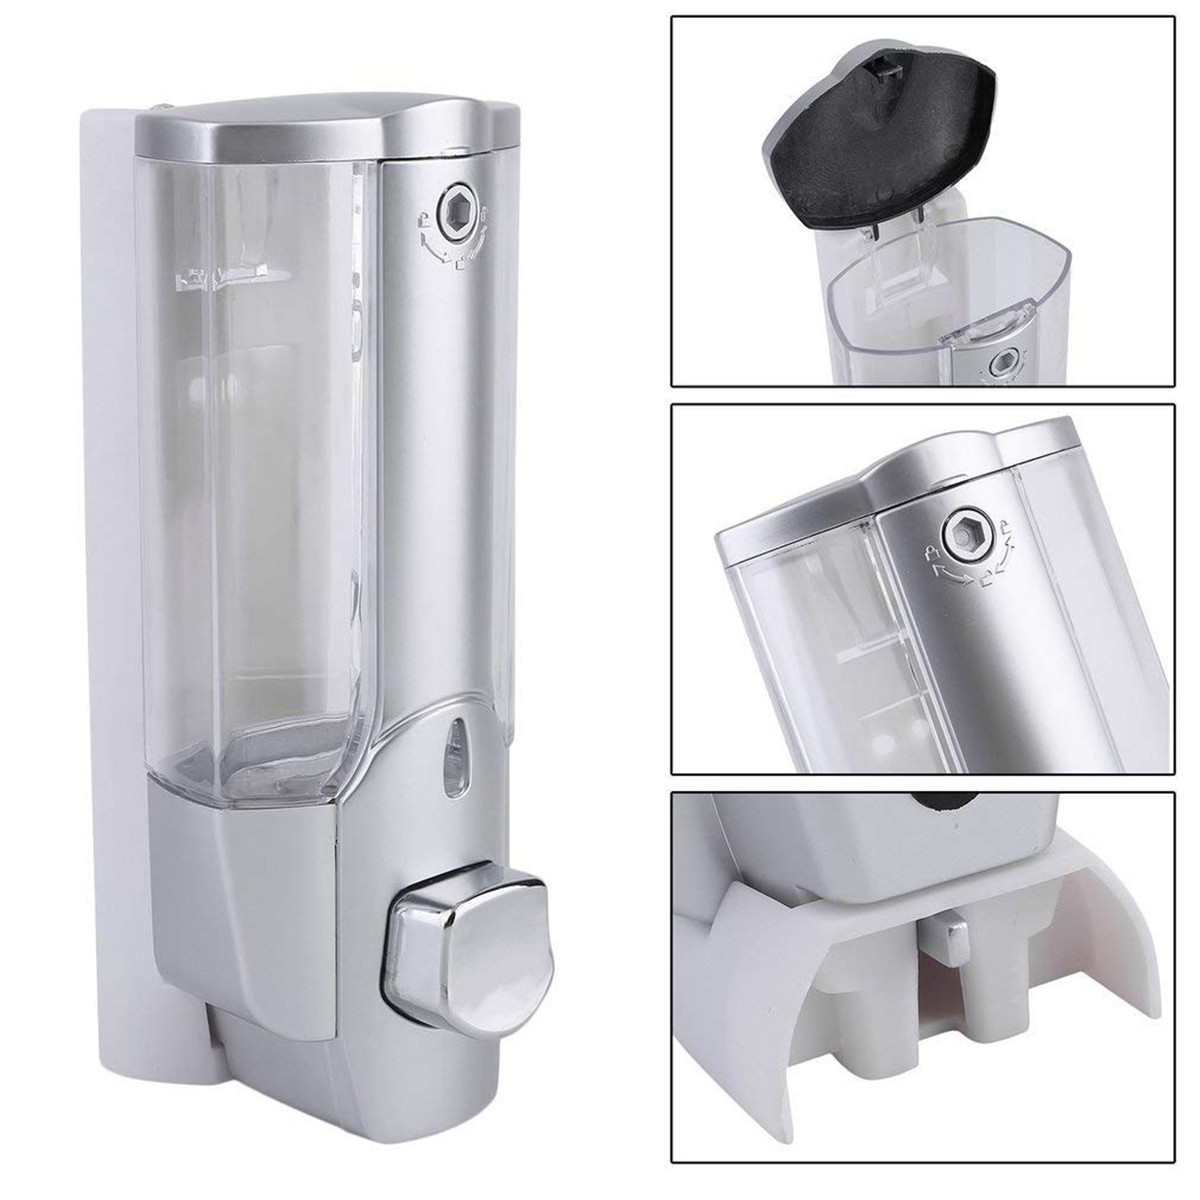 350ml Hand Soap Dispenser Wall Mount Shower Shampoo Dispensers Containers with Lock for Bathroom Washroom Hand 350ml Hand Soap Dispenser Wall Mount Shower Shampoo Dispensers Containers with Lock for Bathroom Washroom Hand Soap Dispenser